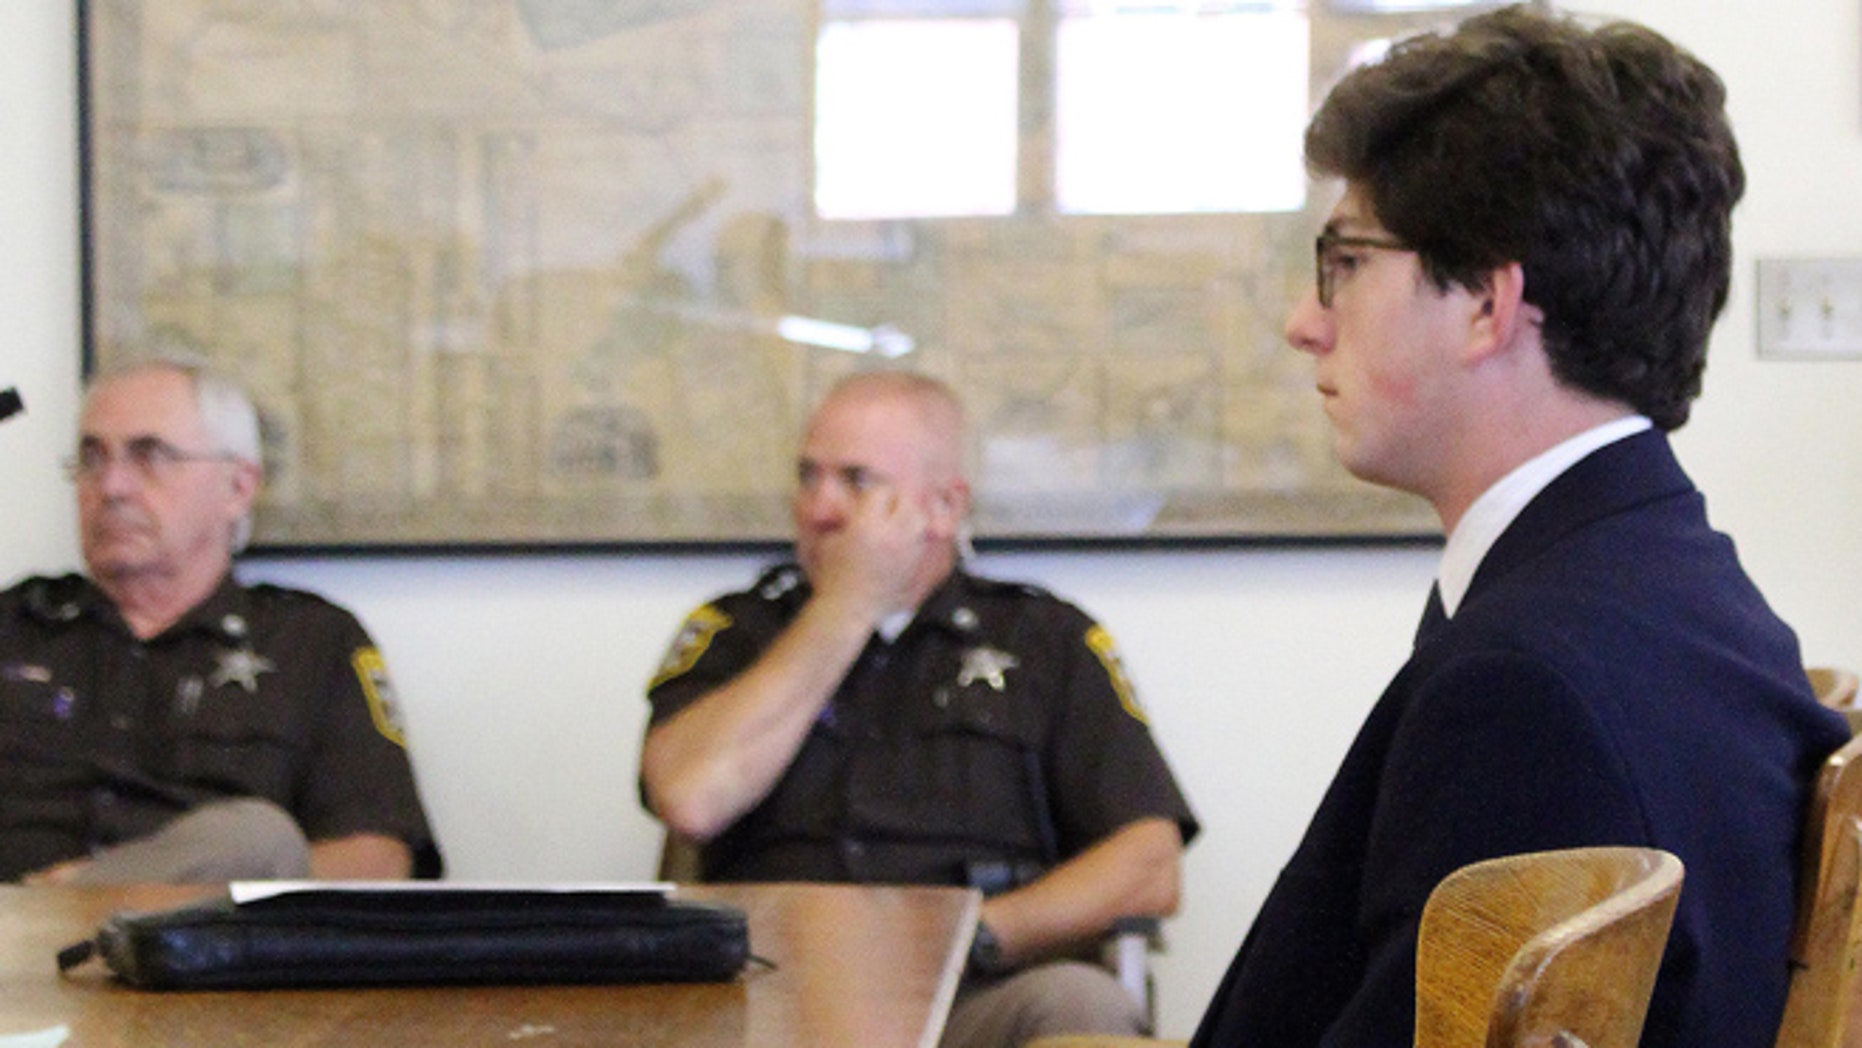 Owen Labrie is charged with taking part in a practice at the school known as Senior Salute where graduating boys try to take the virginity of younger girls before the school year ends.